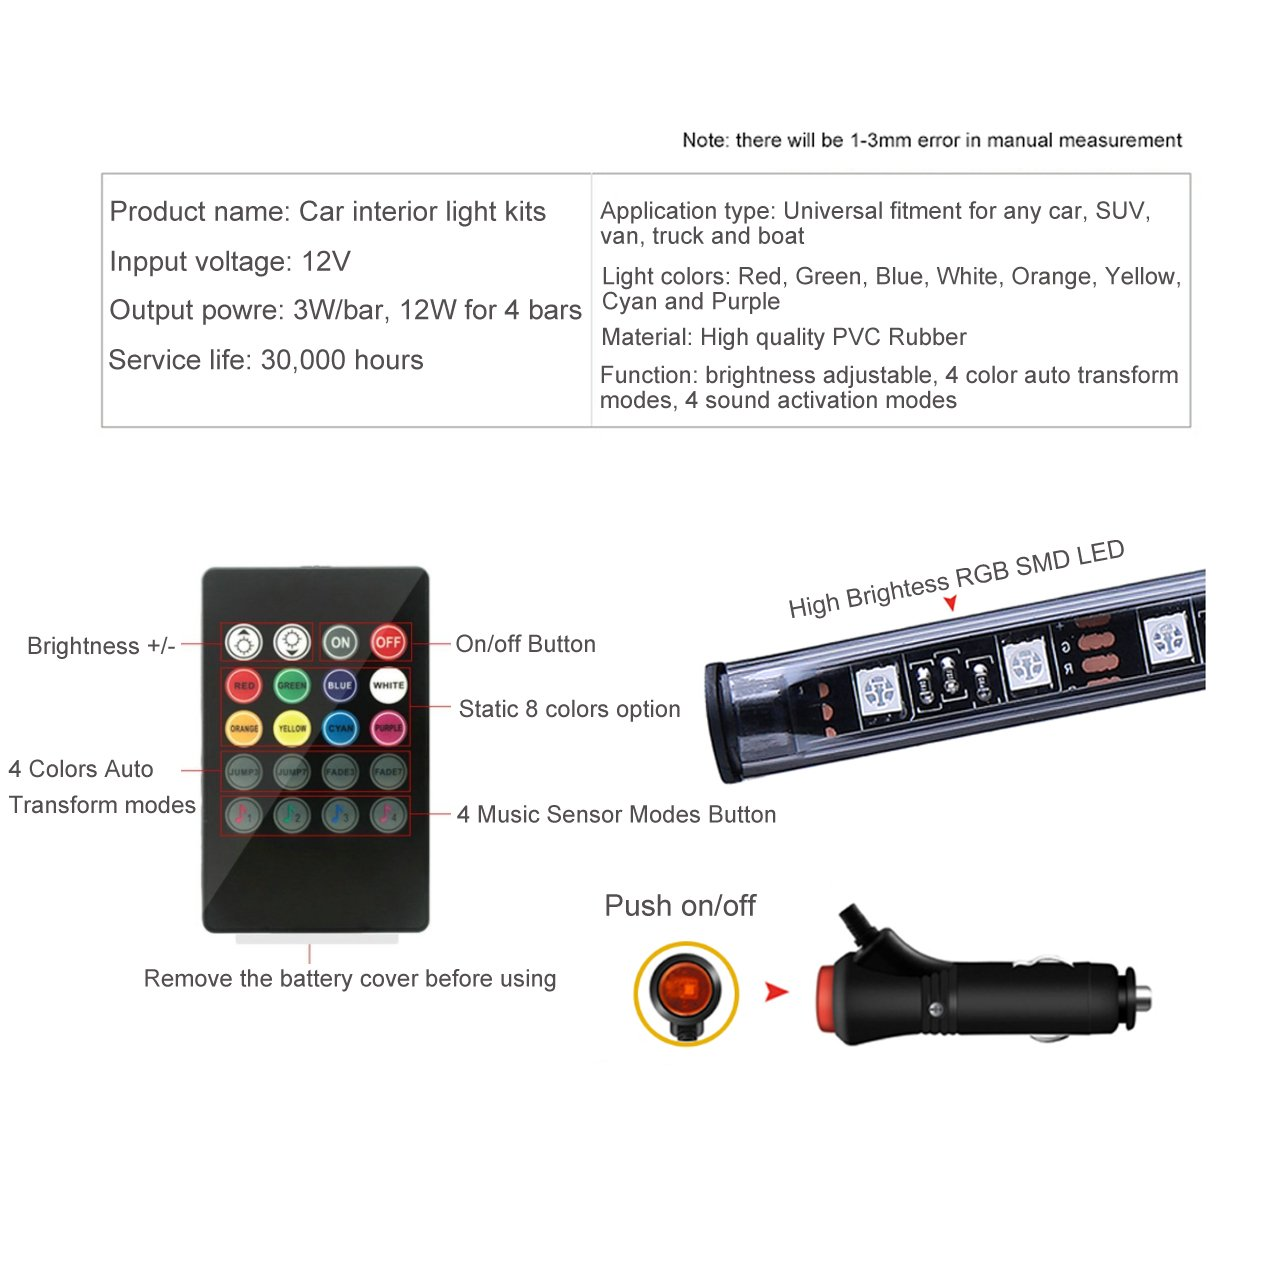 BRTLX LED Car Interior Lights 2.62ft Multicolor Atmosphere Underdash Lighting Kit 4pcs 48 LEDs with Sound Active Function Wireless Remote Control Car Charger Included Universal Fitment